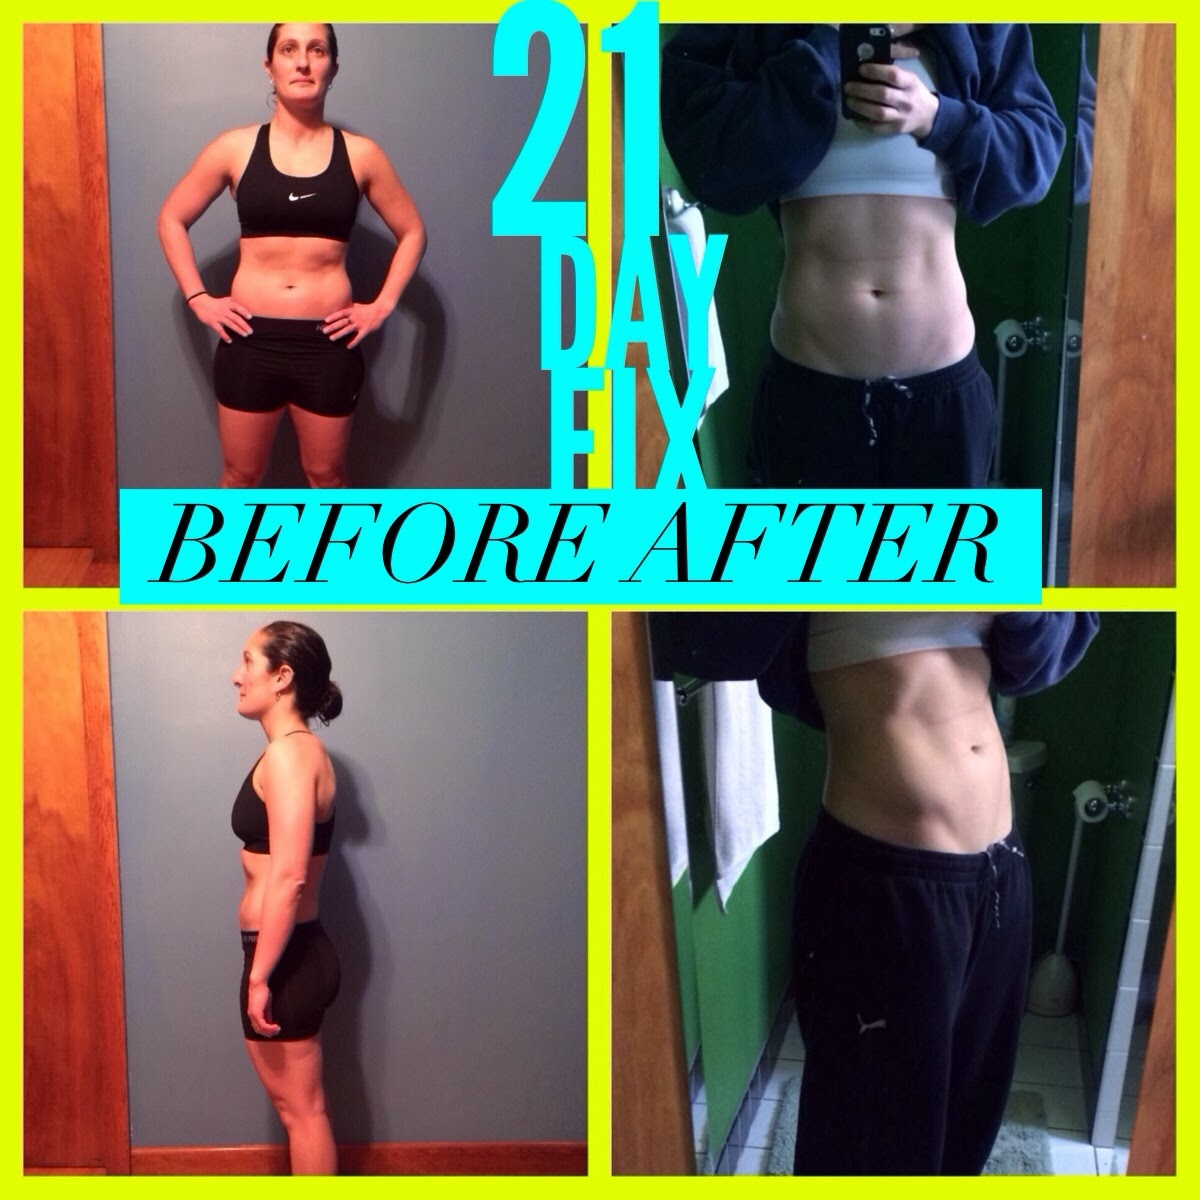 21 day fix, results, 21 day fix results, abs, muscle, beachbody